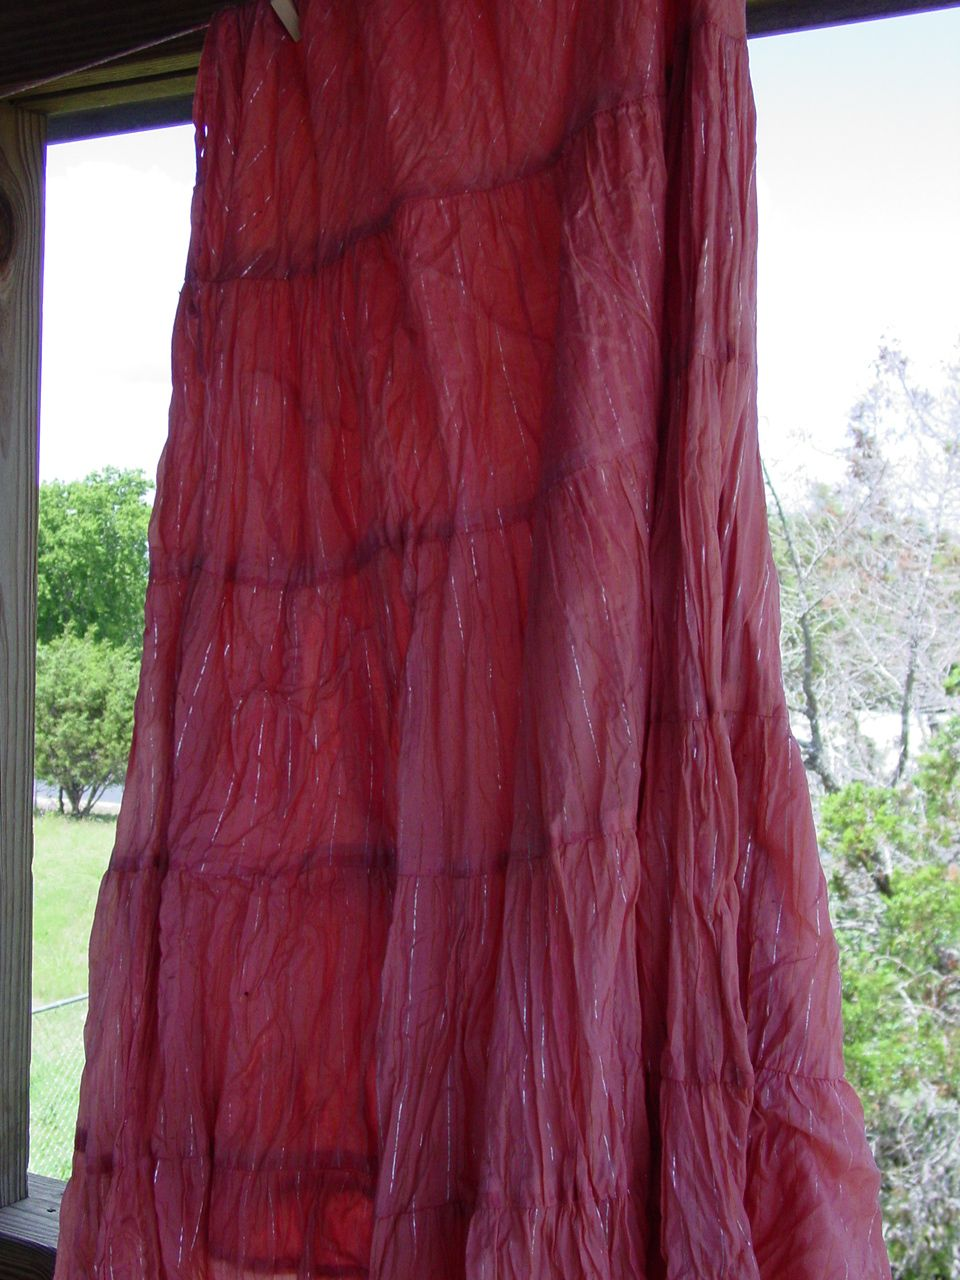 Natural Dyeing With Beets - other articles stated that the beet pink ...